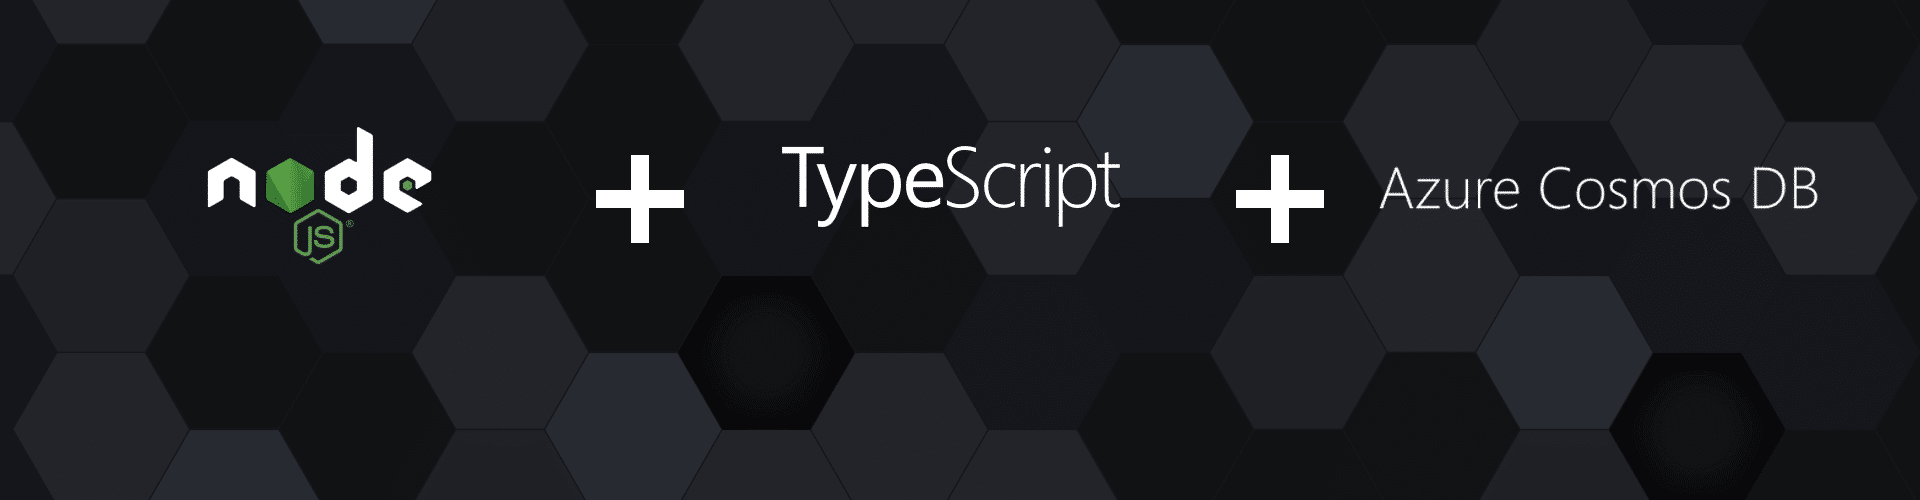 Azure DocumentDB integration with Node js using TypeScript